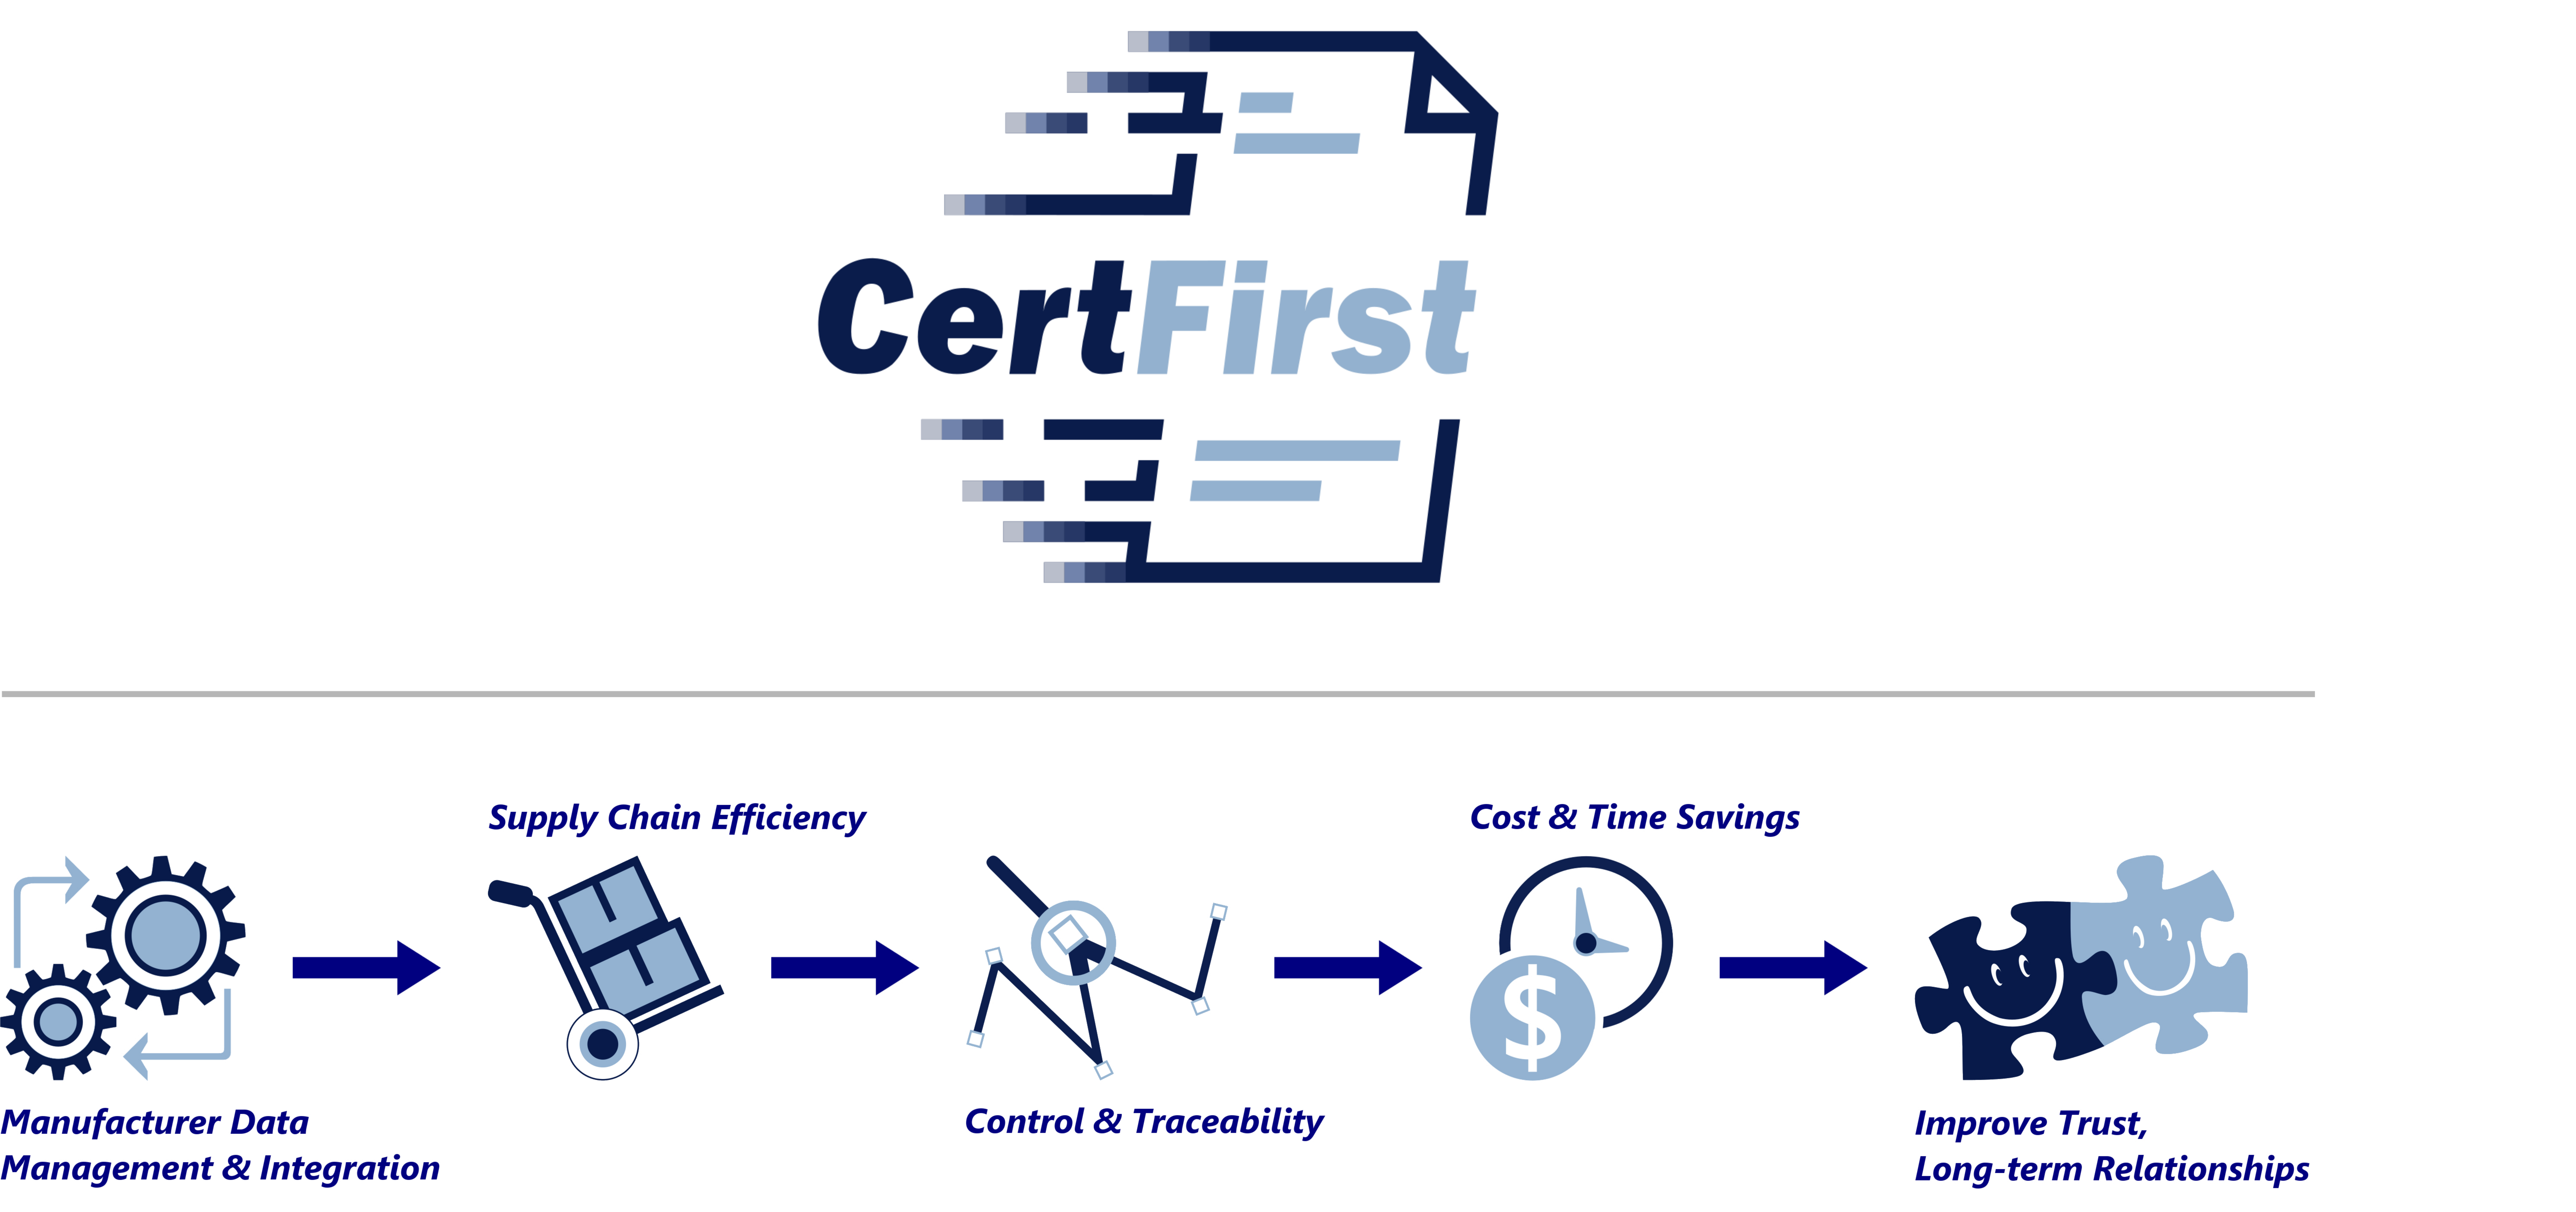 CertFirst Process Key Points